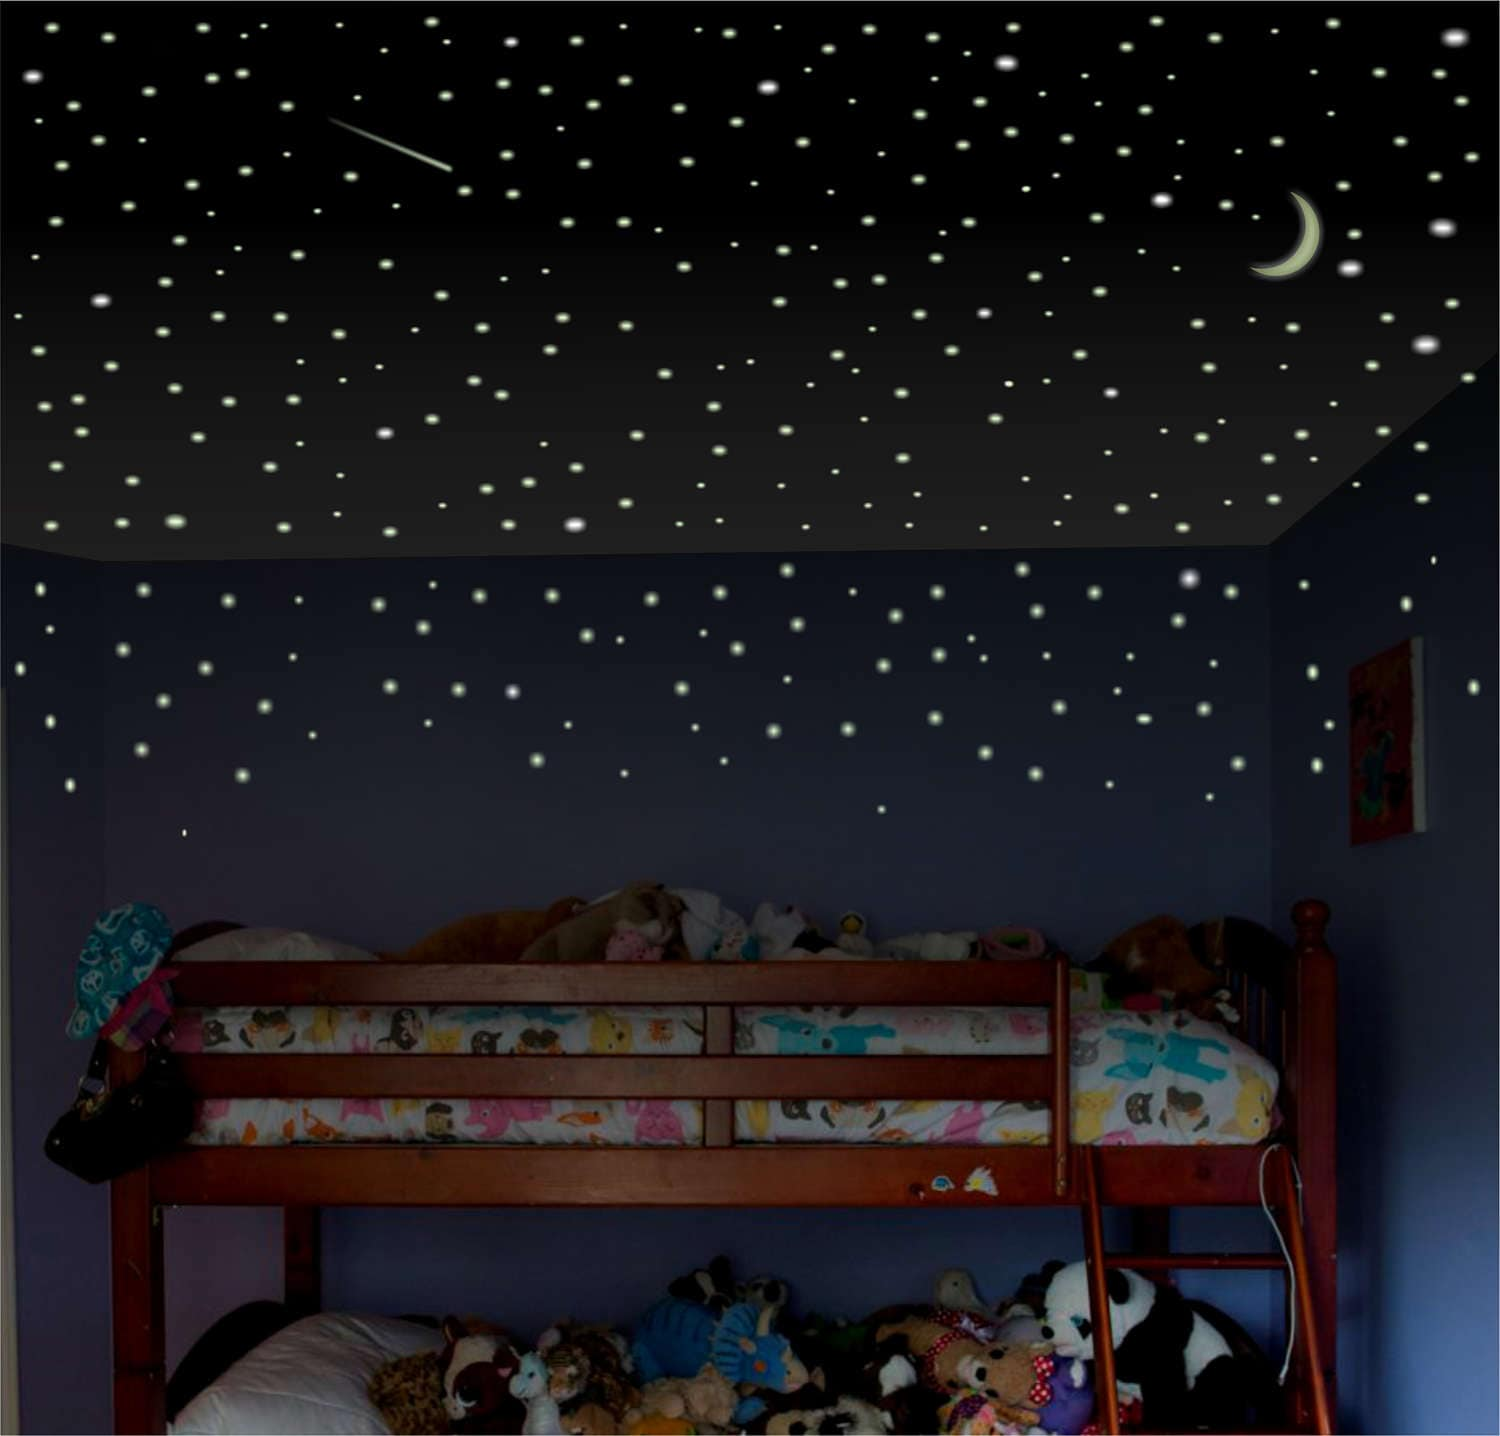 Stars Room Decor Glow In The Dark Stars 1000 Ceiling Stars Glow Stars Glowing Stars Ceiling Stickers Glow In The Dark Stars Kids Room Decor